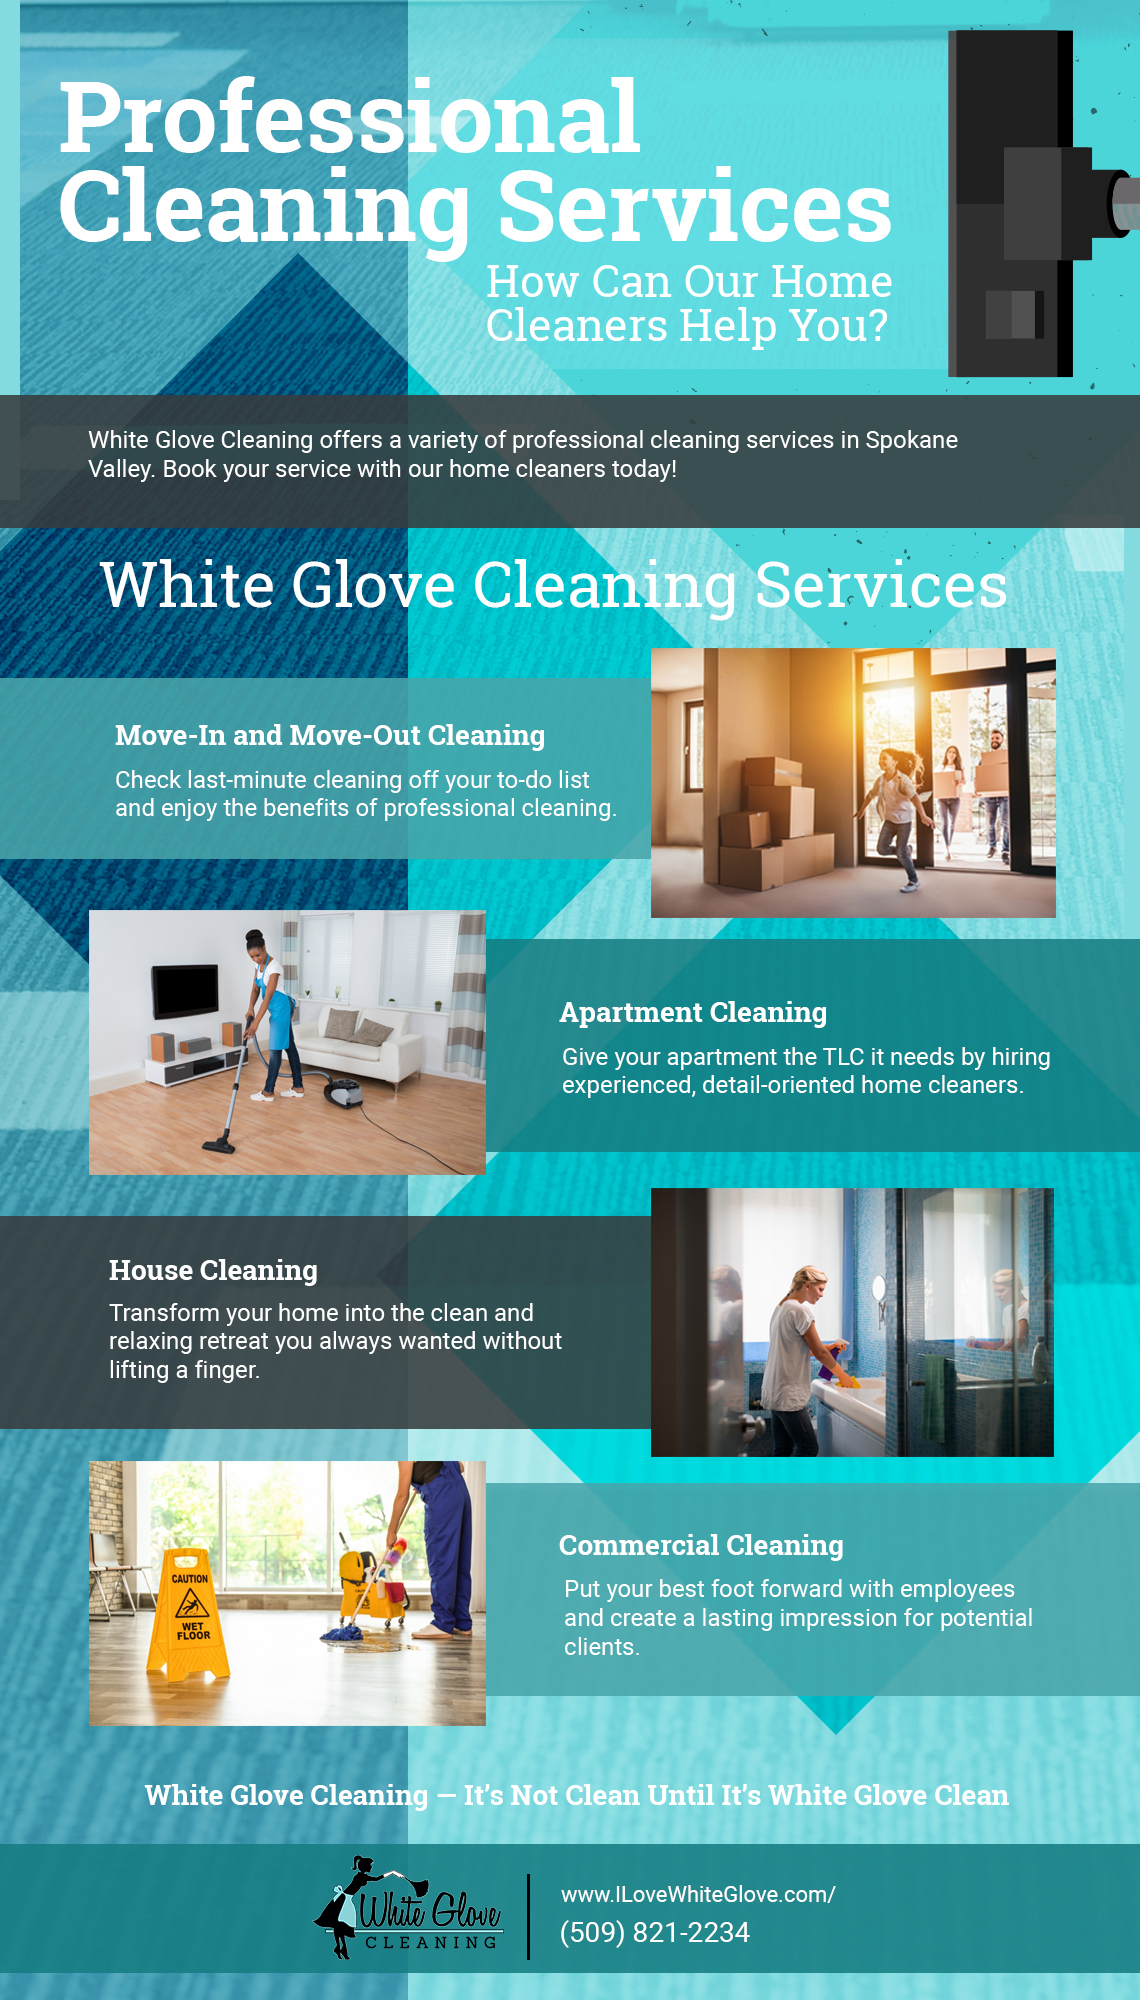 Cleaning Services Spokane Valley: How Can Our Home Cleaners ...